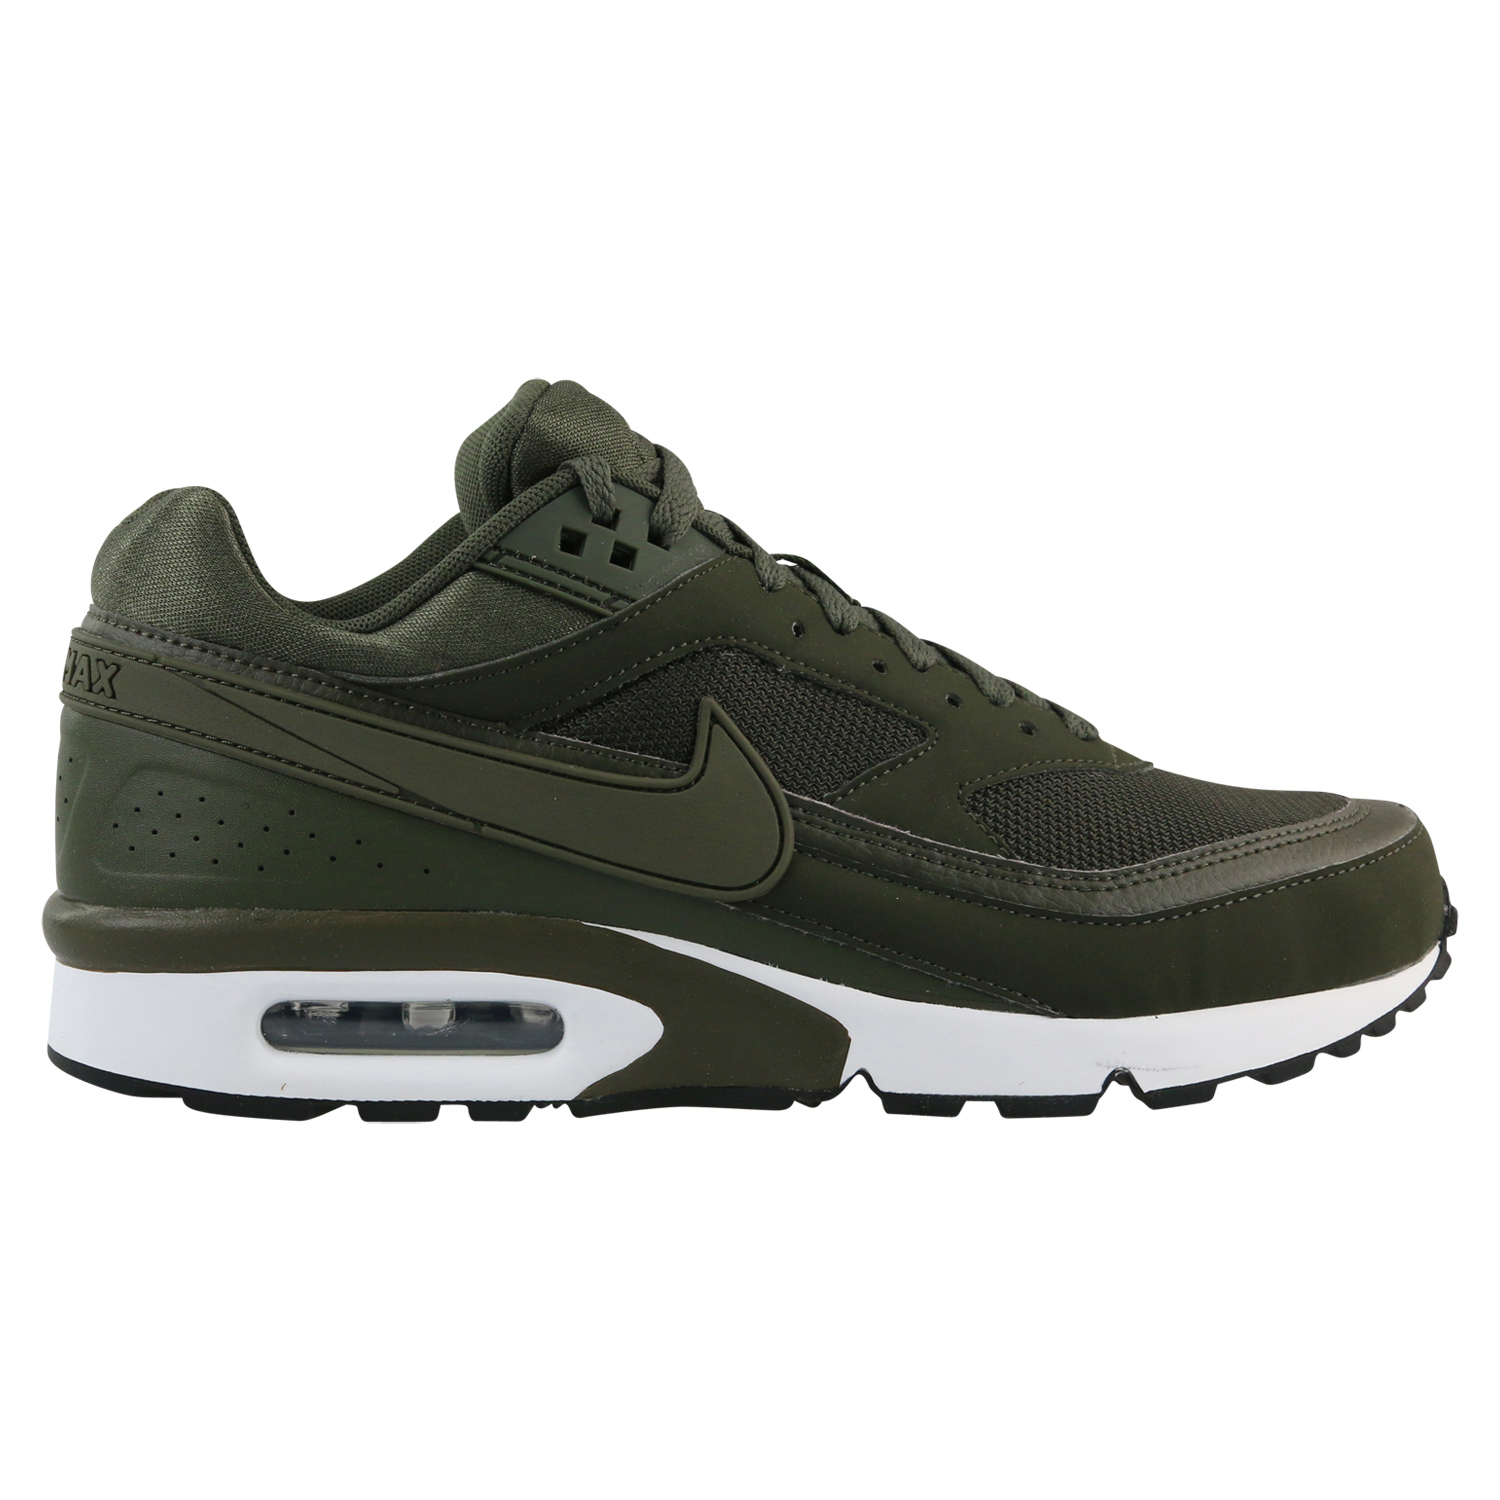 nike air max bw classic sneaker schuhe herren khaki olive. Black Bedroom Furniture Sets. Home Design Ideas